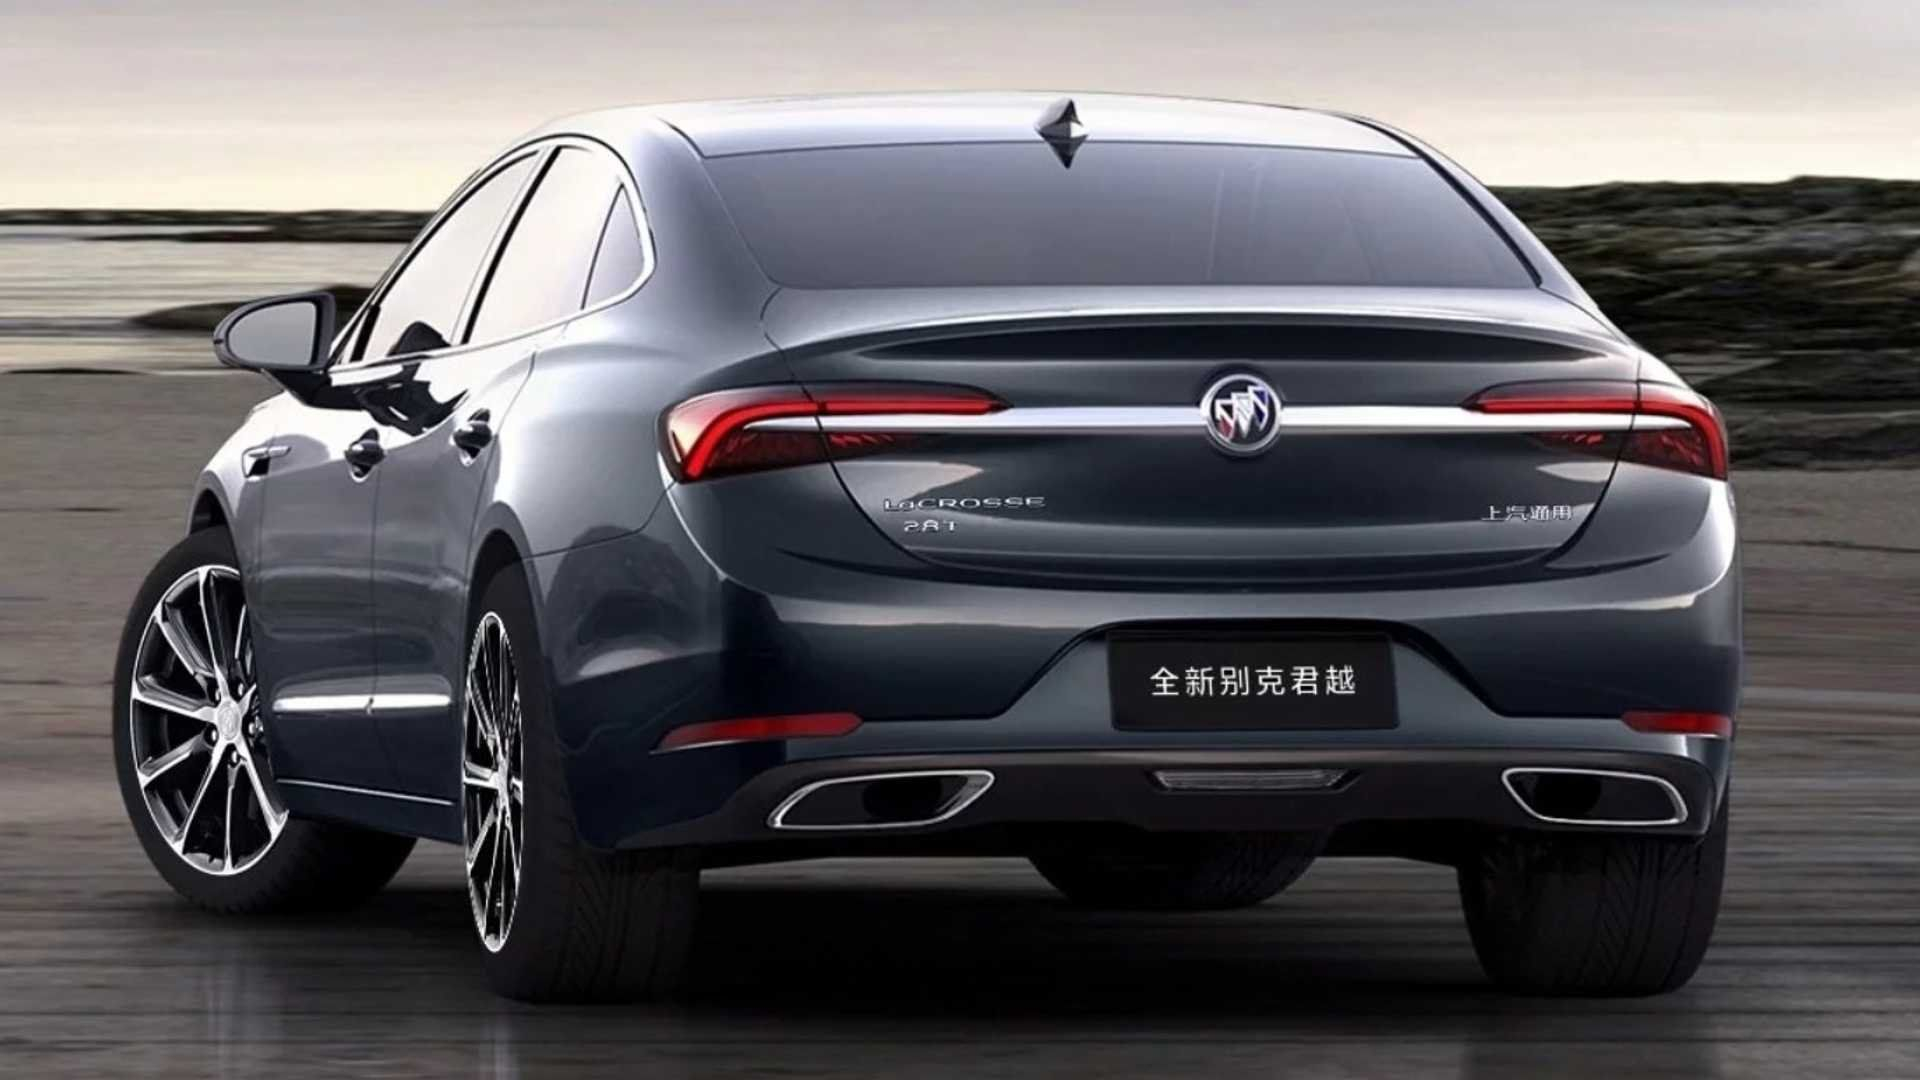 picture of a 2021 buick lacrosse | 2021 buick